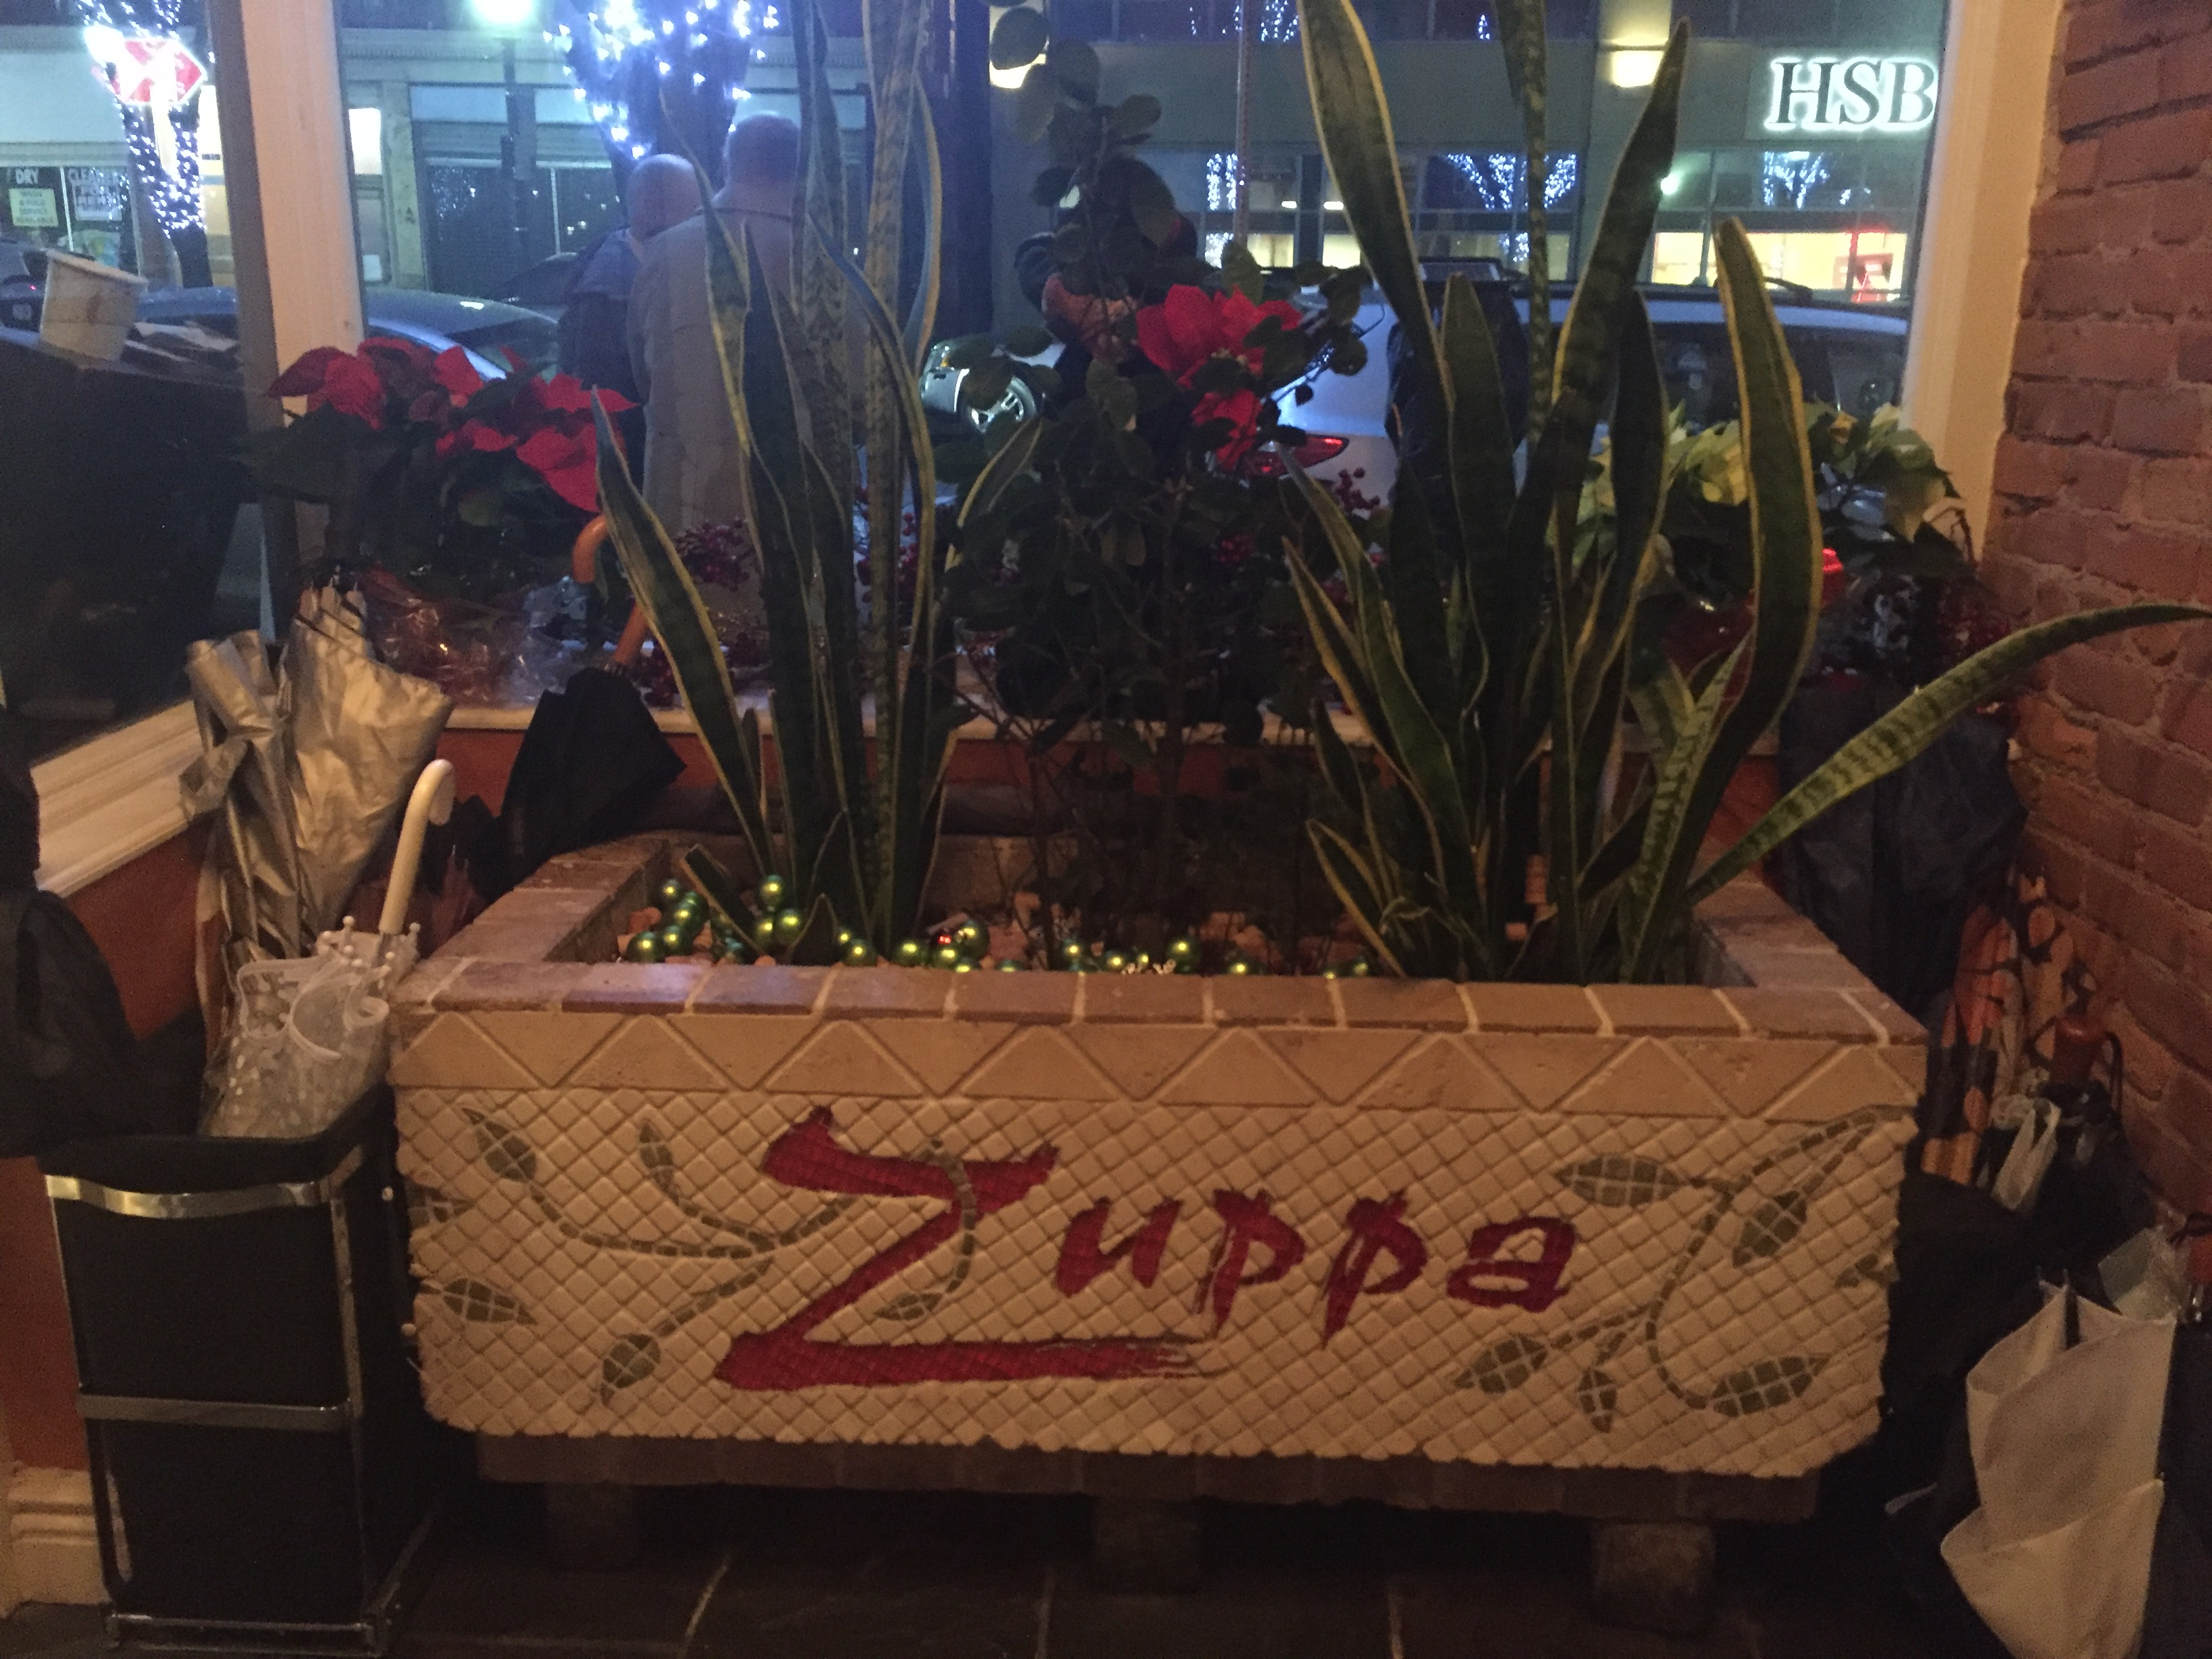 Thank you to one of our Sponsors, Zuppa Resturant & Lounge